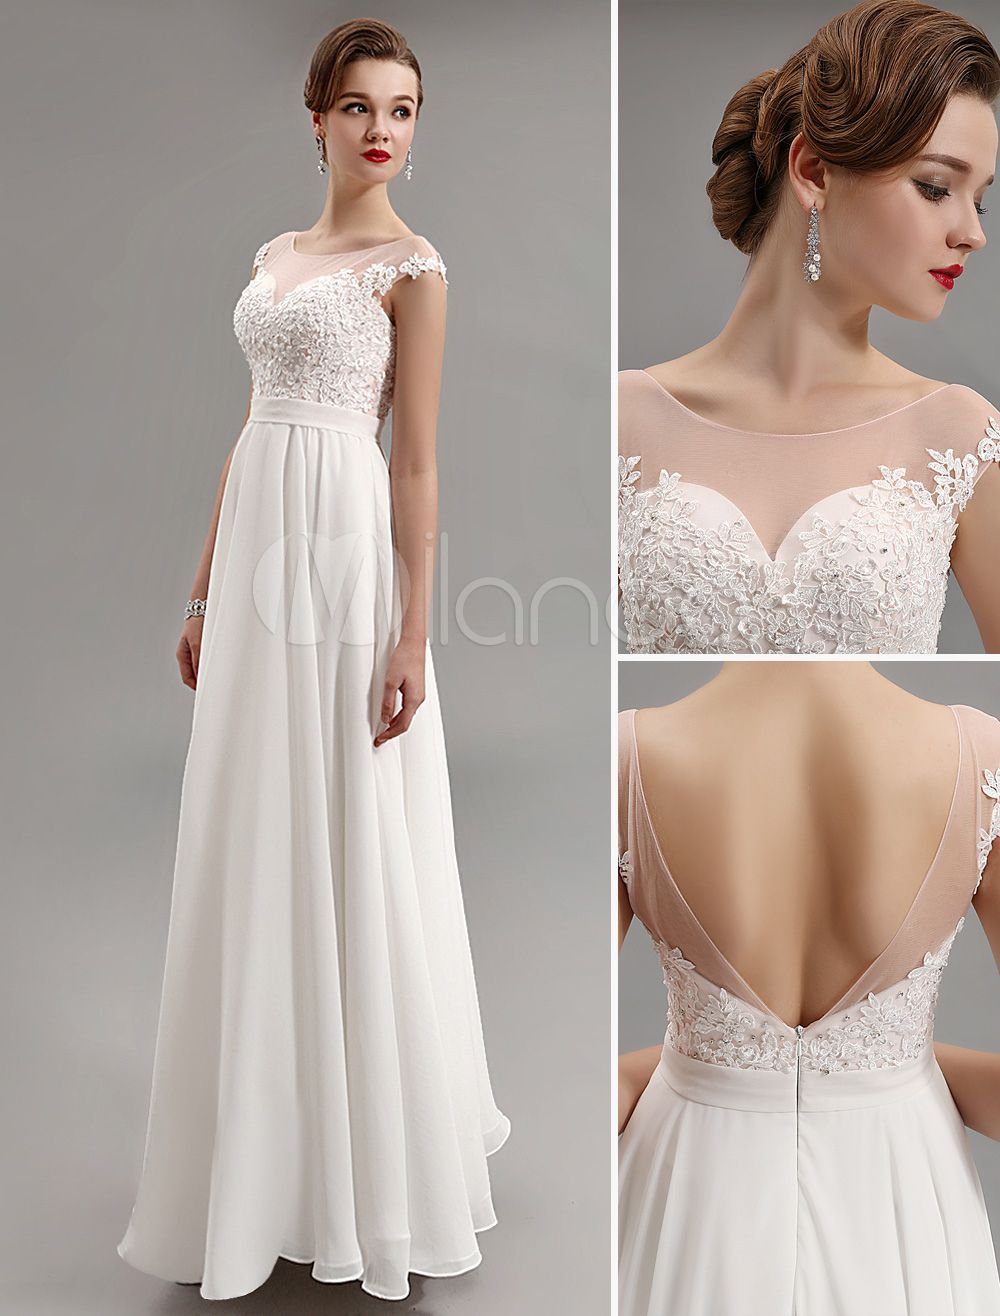 Ivory chiffon illusion neck floor length evening dress with open